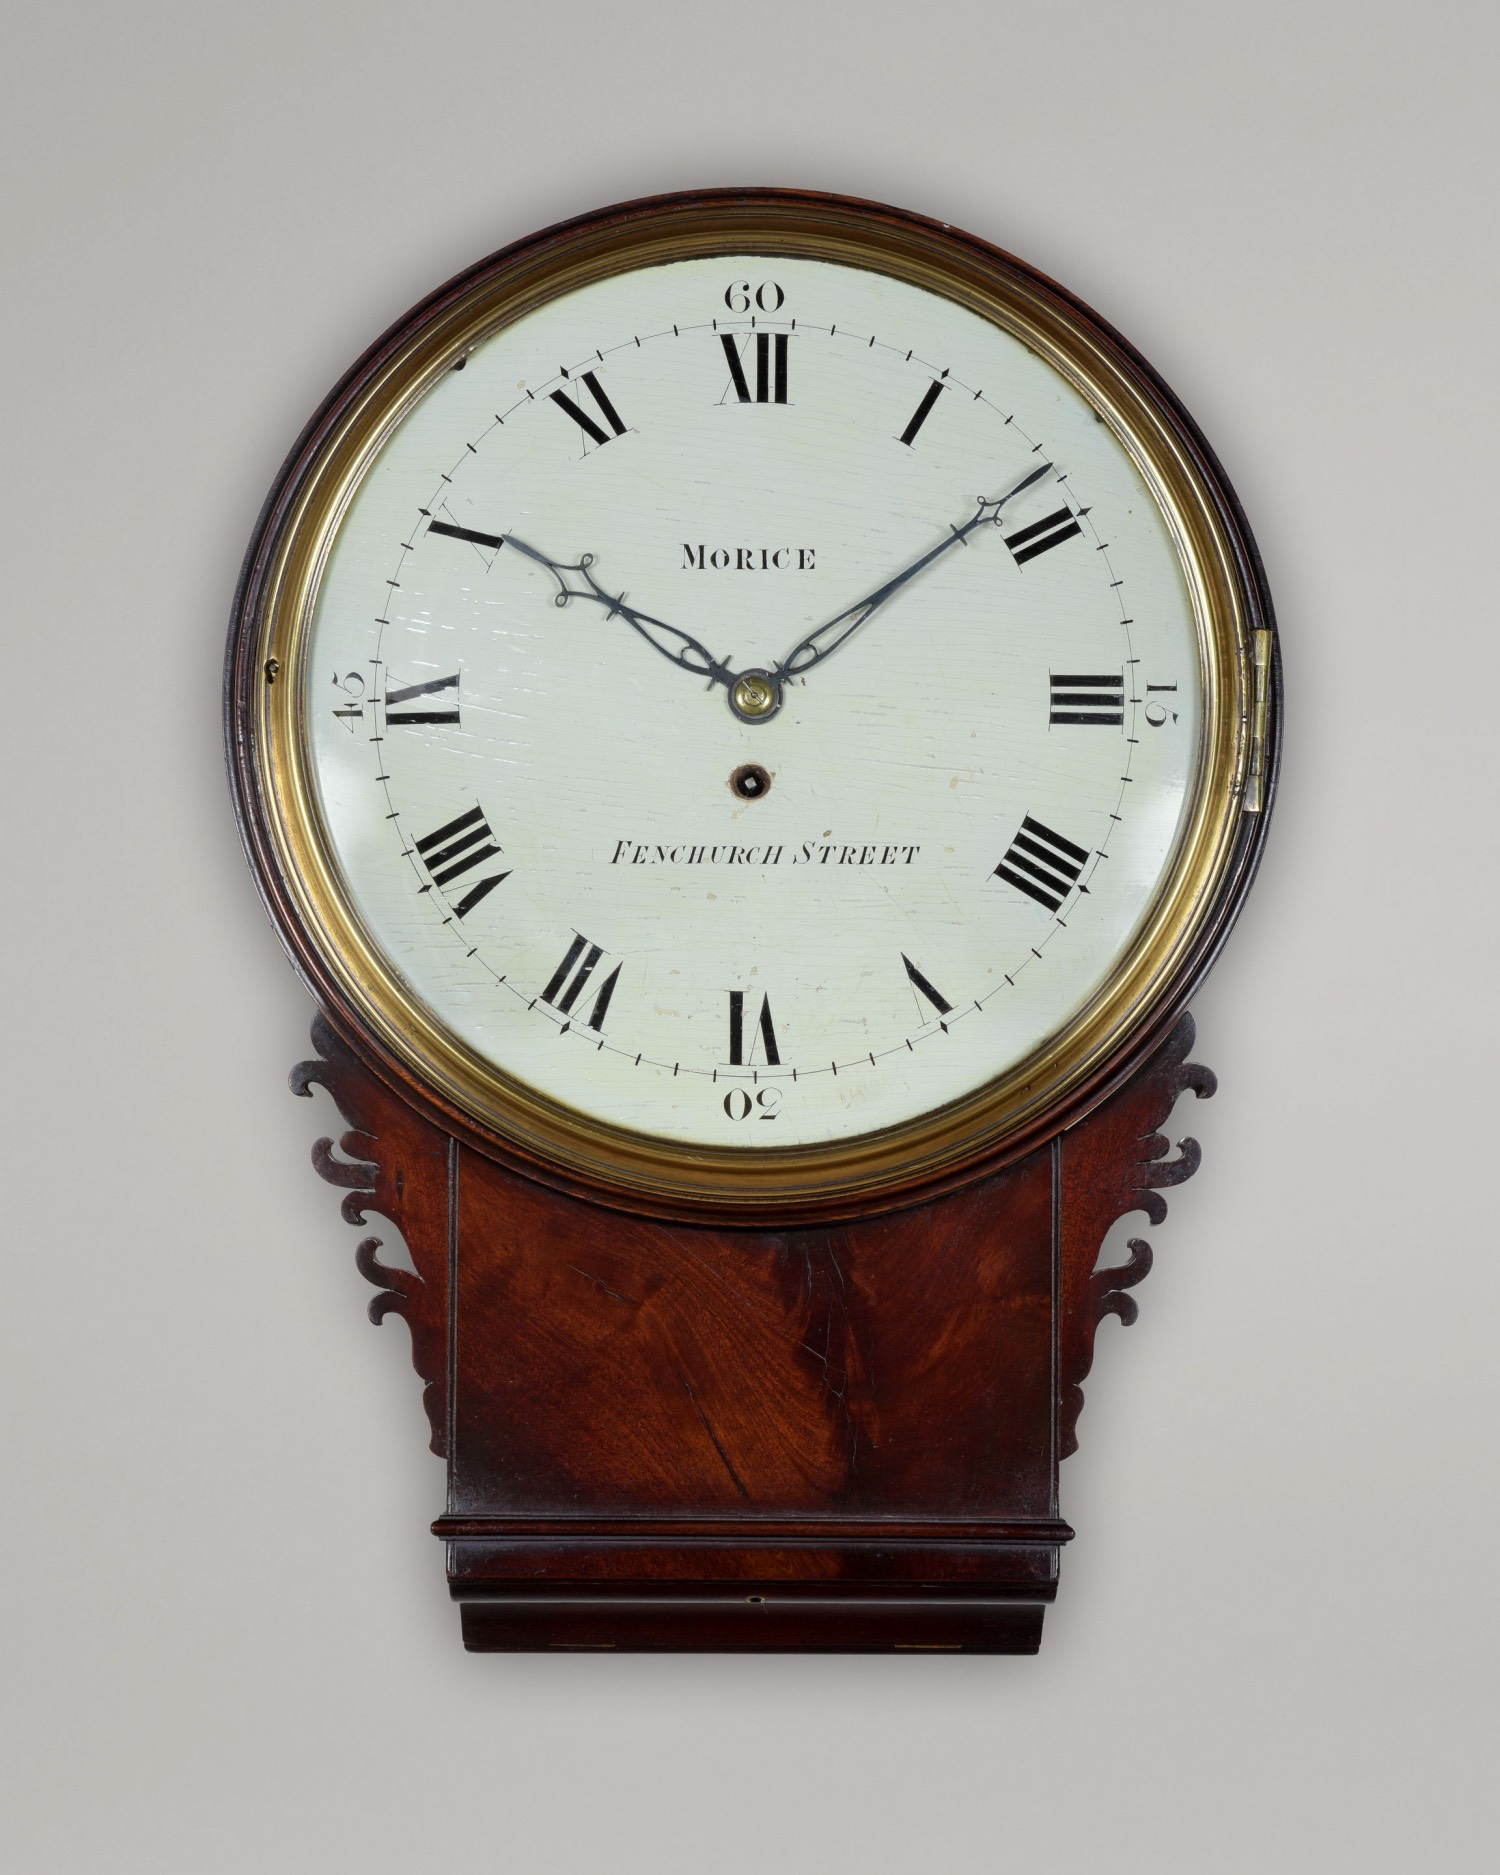 MORICE. AN EXCEPTIONAL LATE GEORGE III PERIOD WALL CLOCK